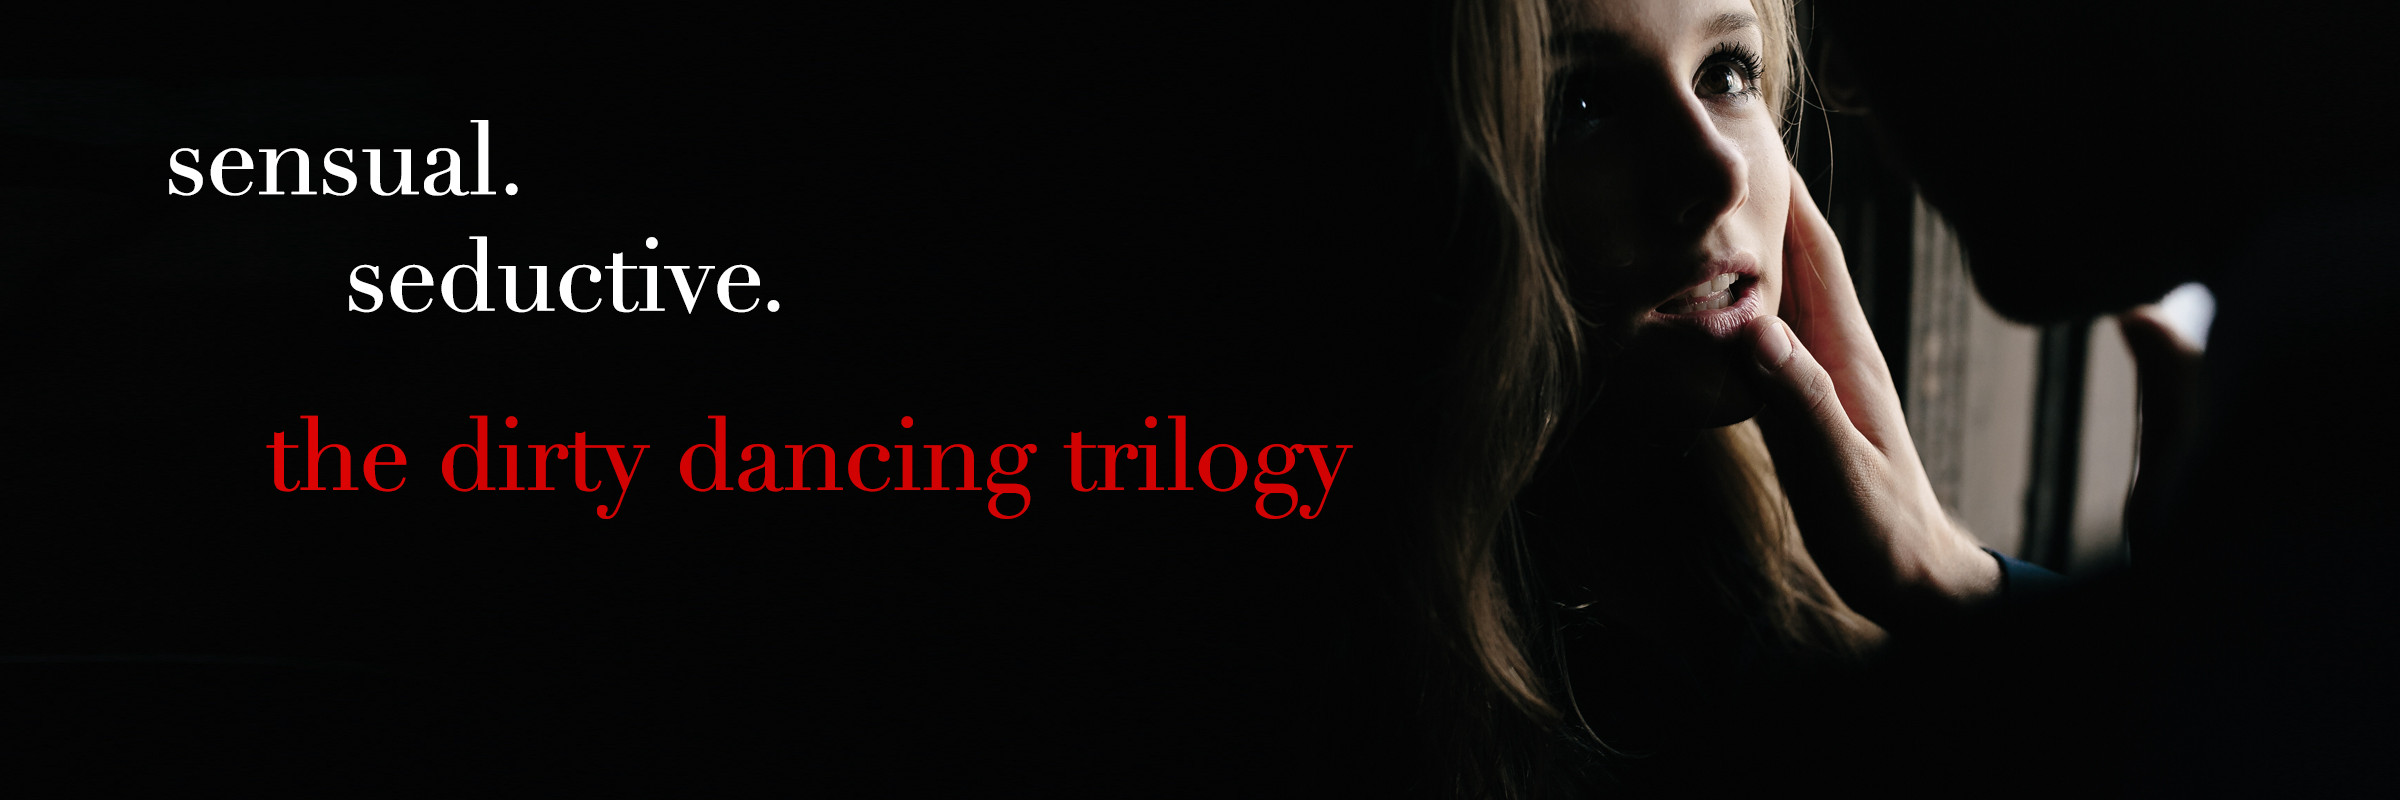 dirty dancing trilogy